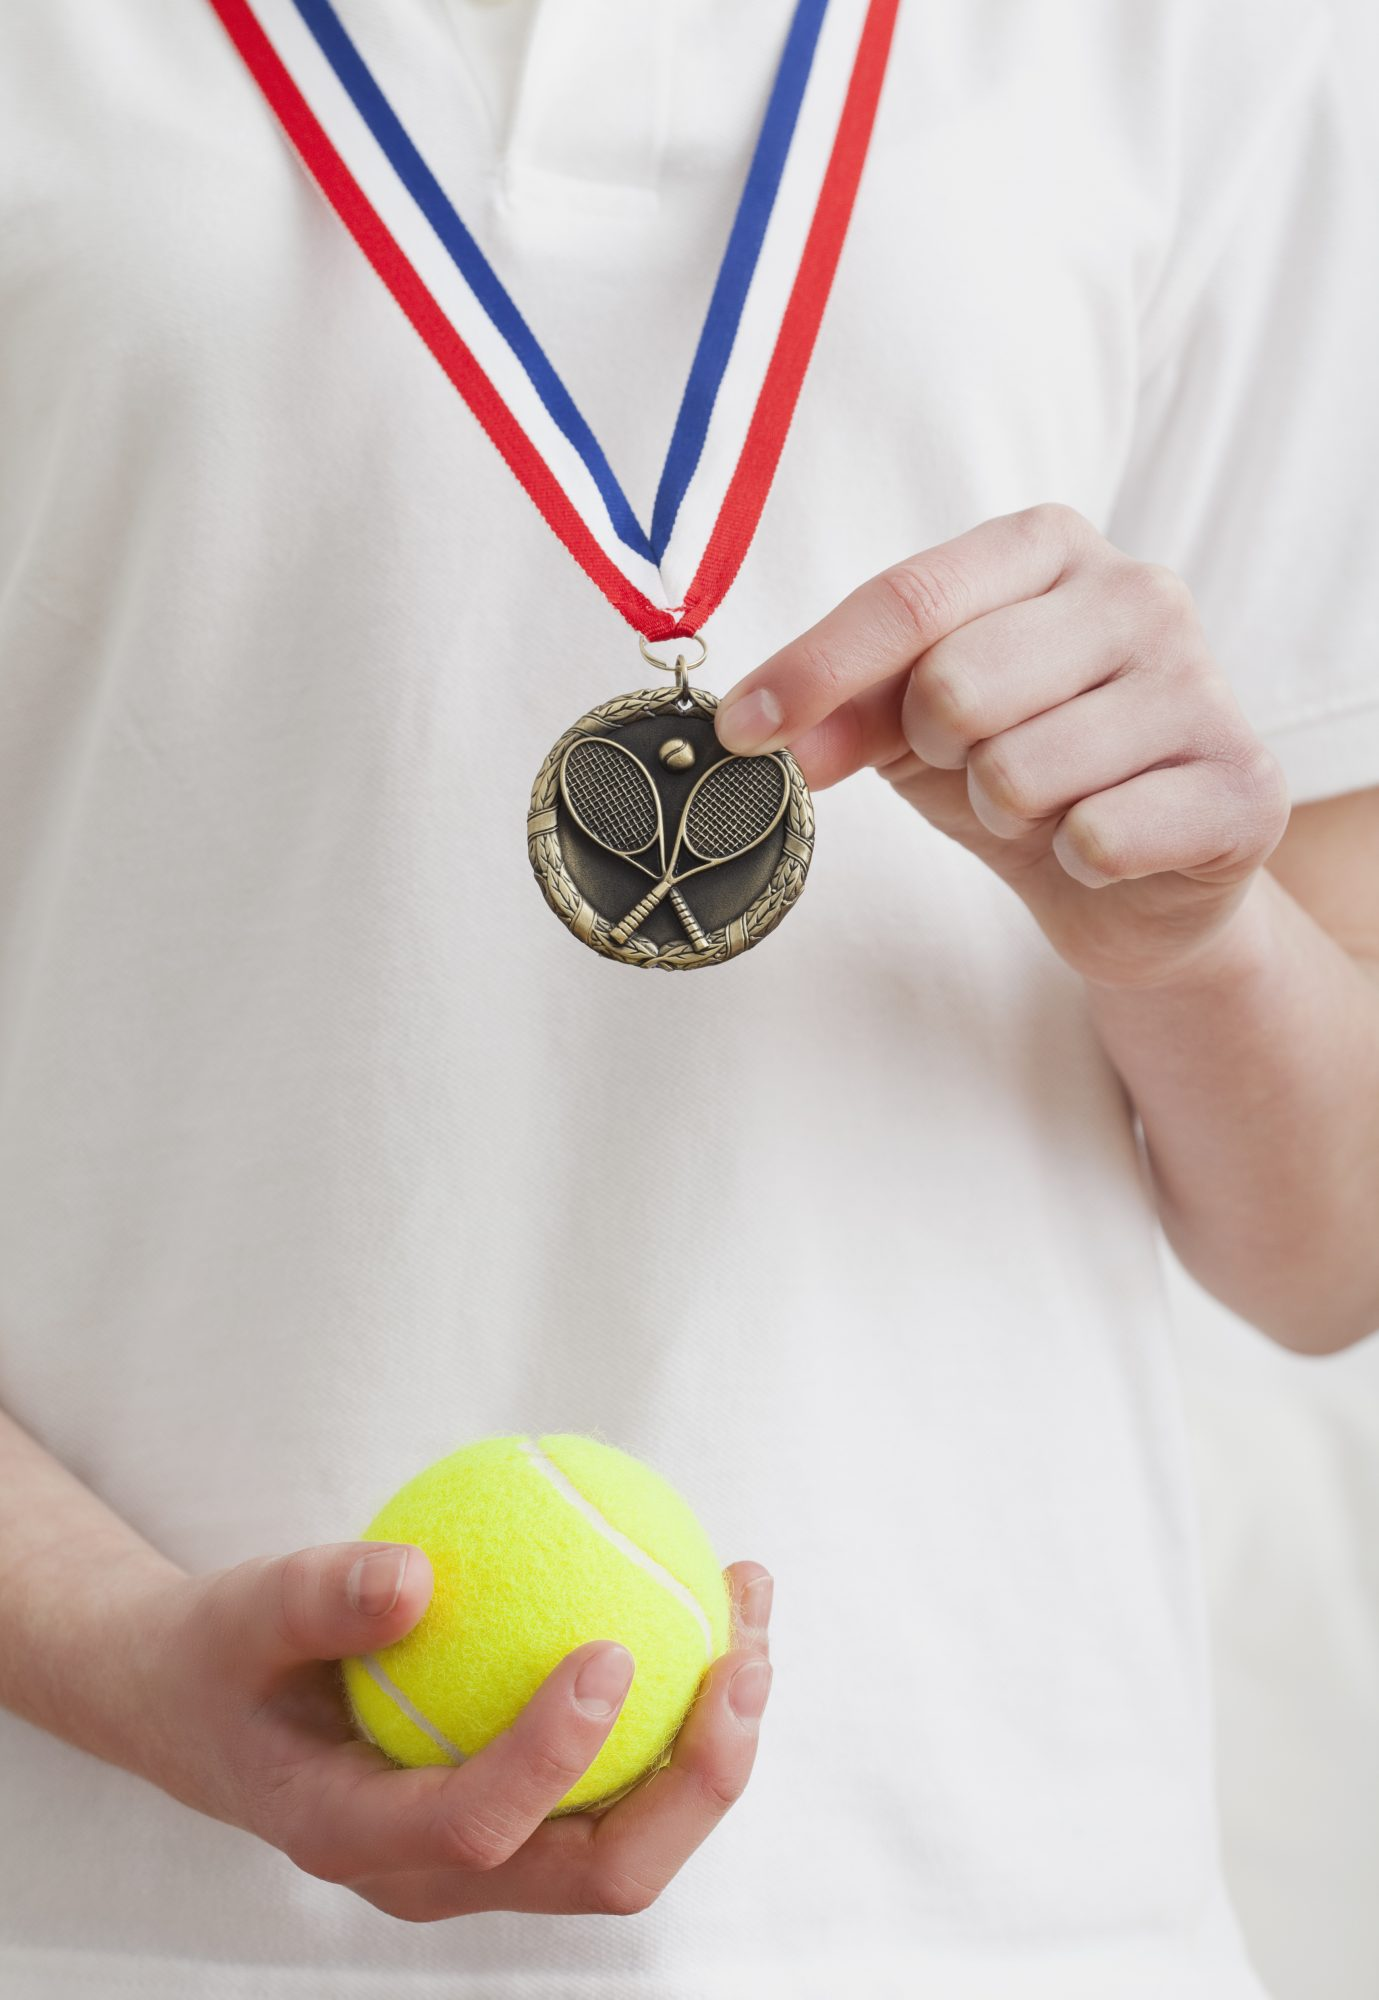 kid-medal-tennis-ball